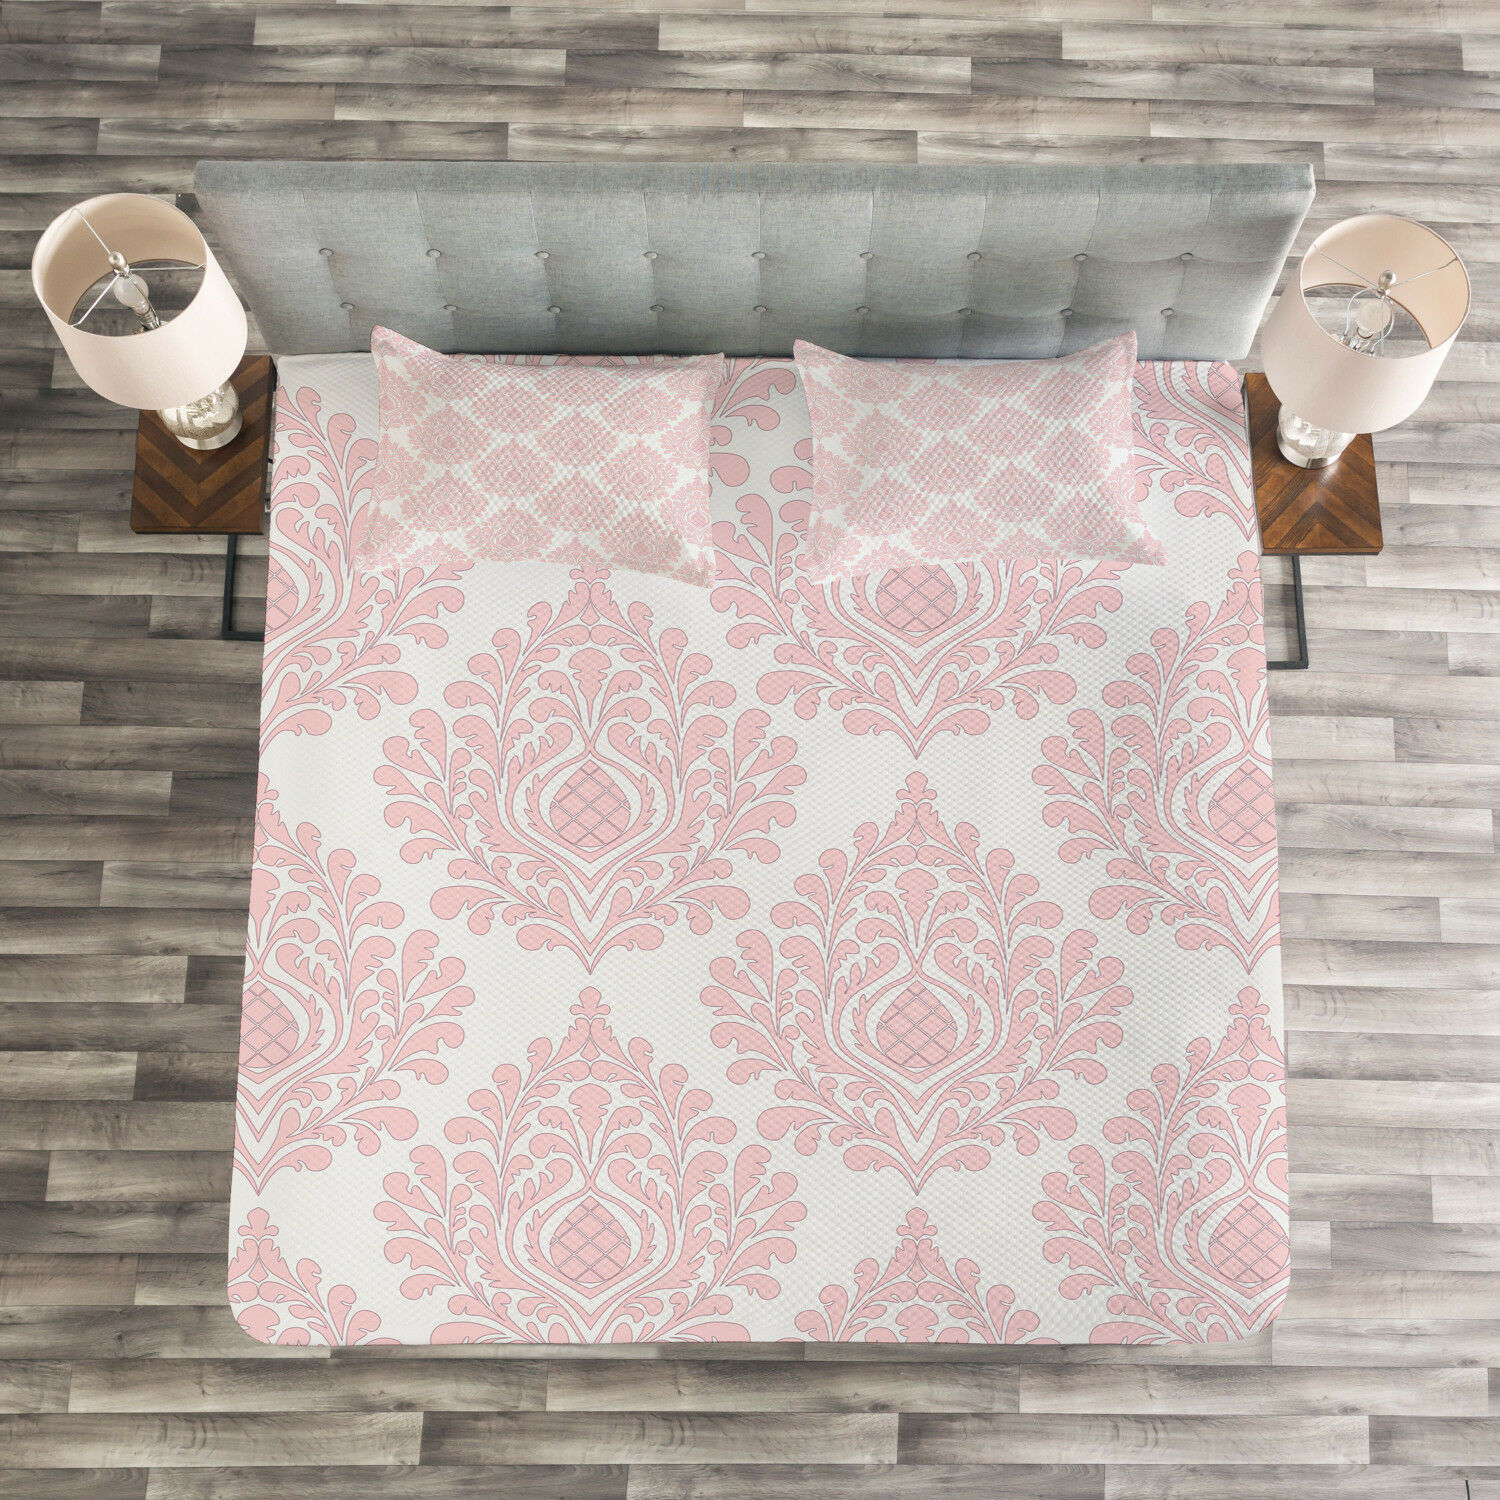 Damask Quilted Bedspread & Pillow Shams Set, Pink Victorian Pattern Print